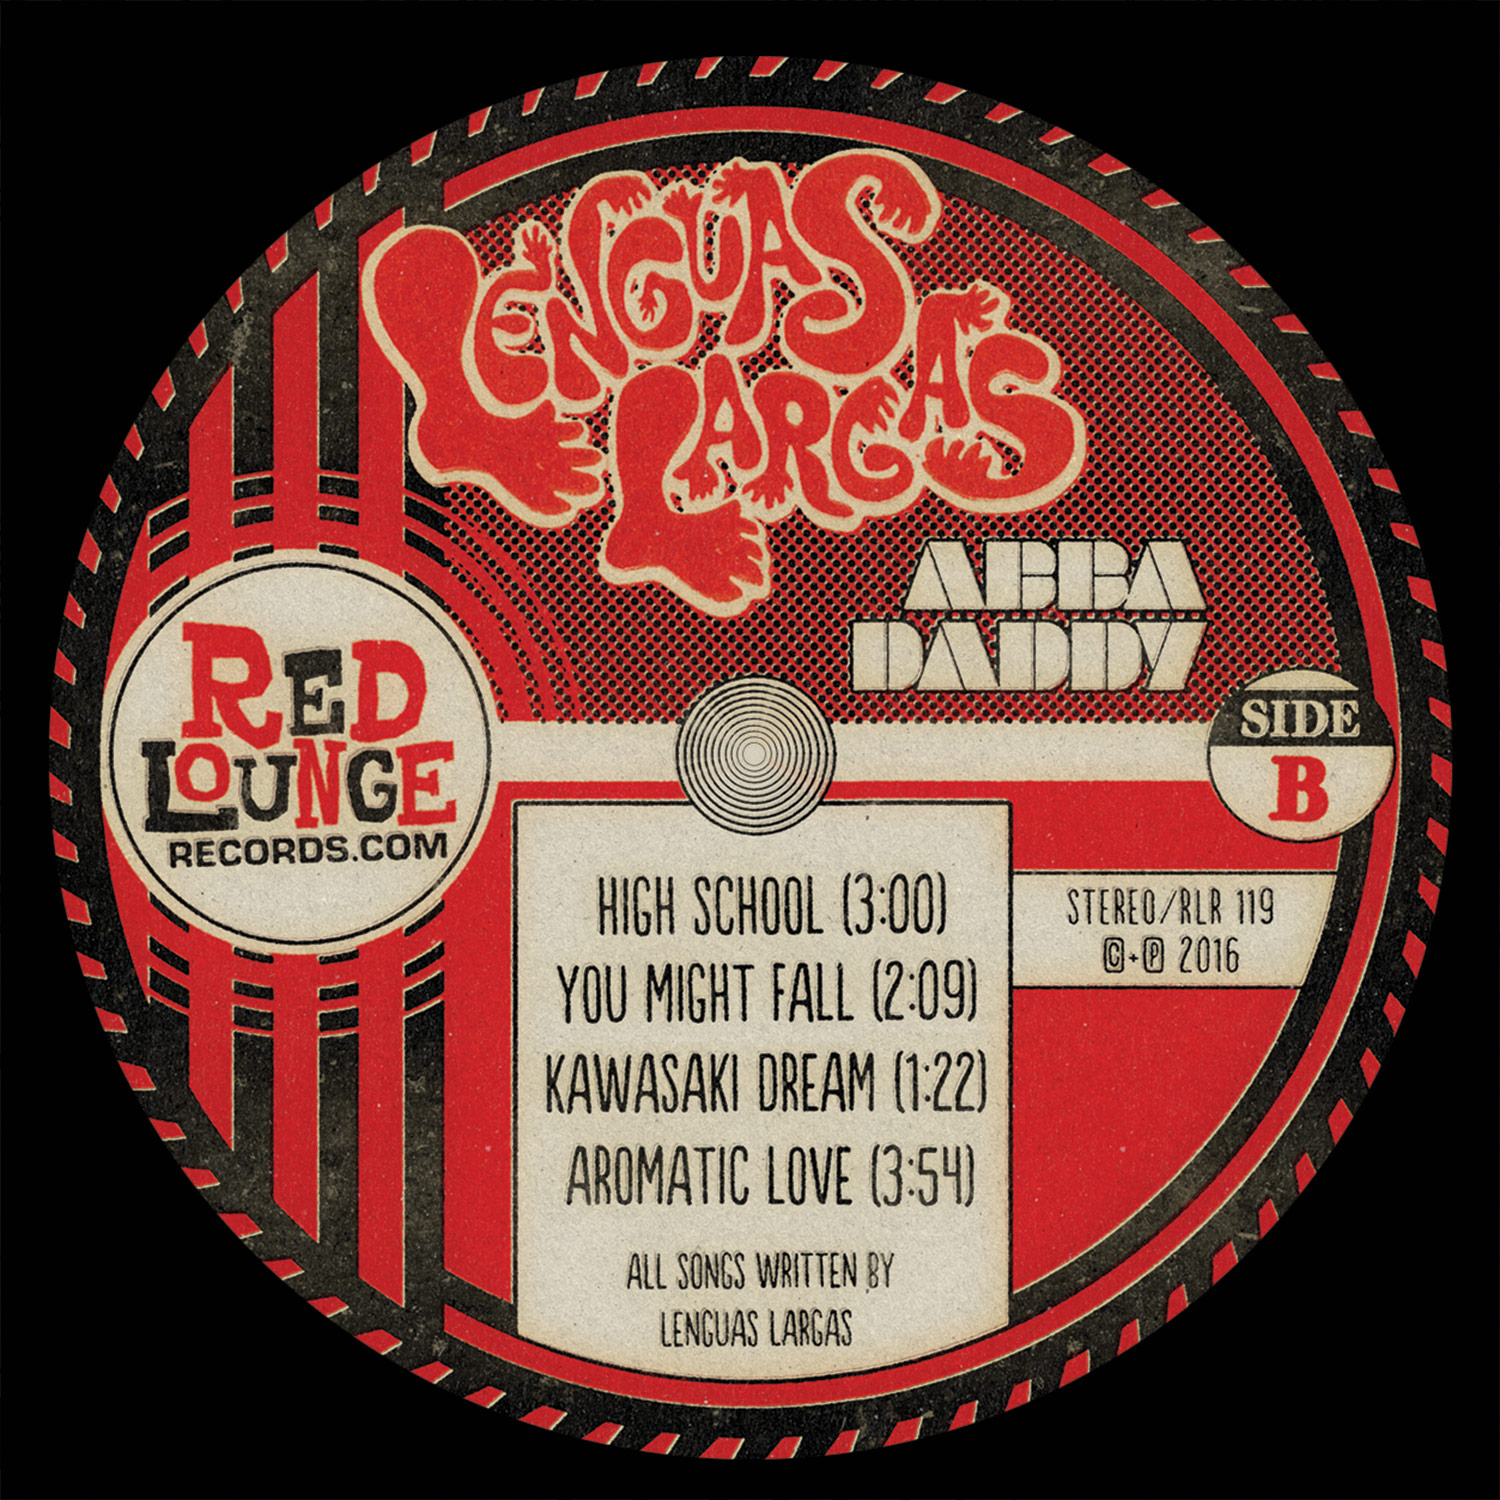 "Lenguas Largas ""Abba Daddy"" Side B LP Label - Graphic Design"